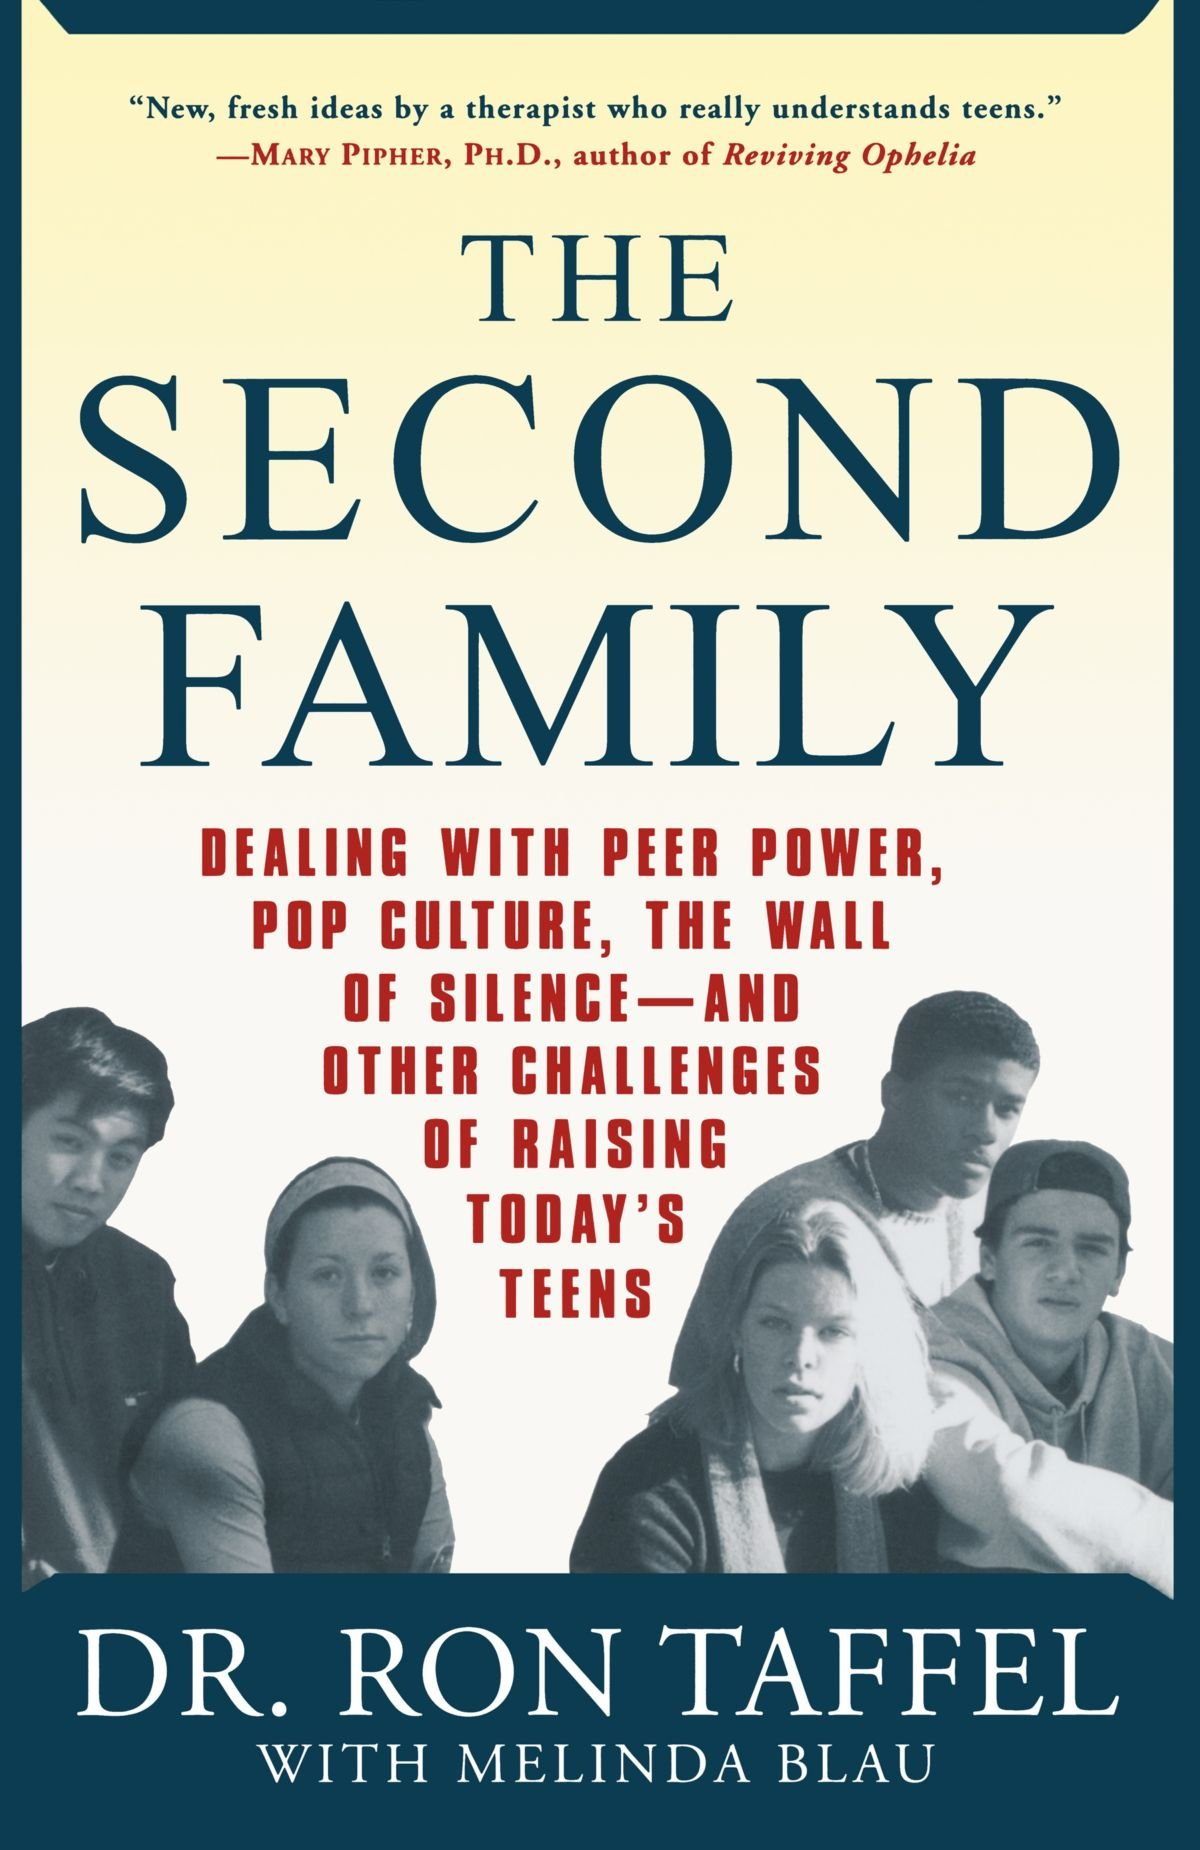 <p>The Second Family: Dealing with Peer Power, Pop Culture, the Wall of Silence &#8212; and Other Challenges of Raising Today&#8217;s Teens</p>